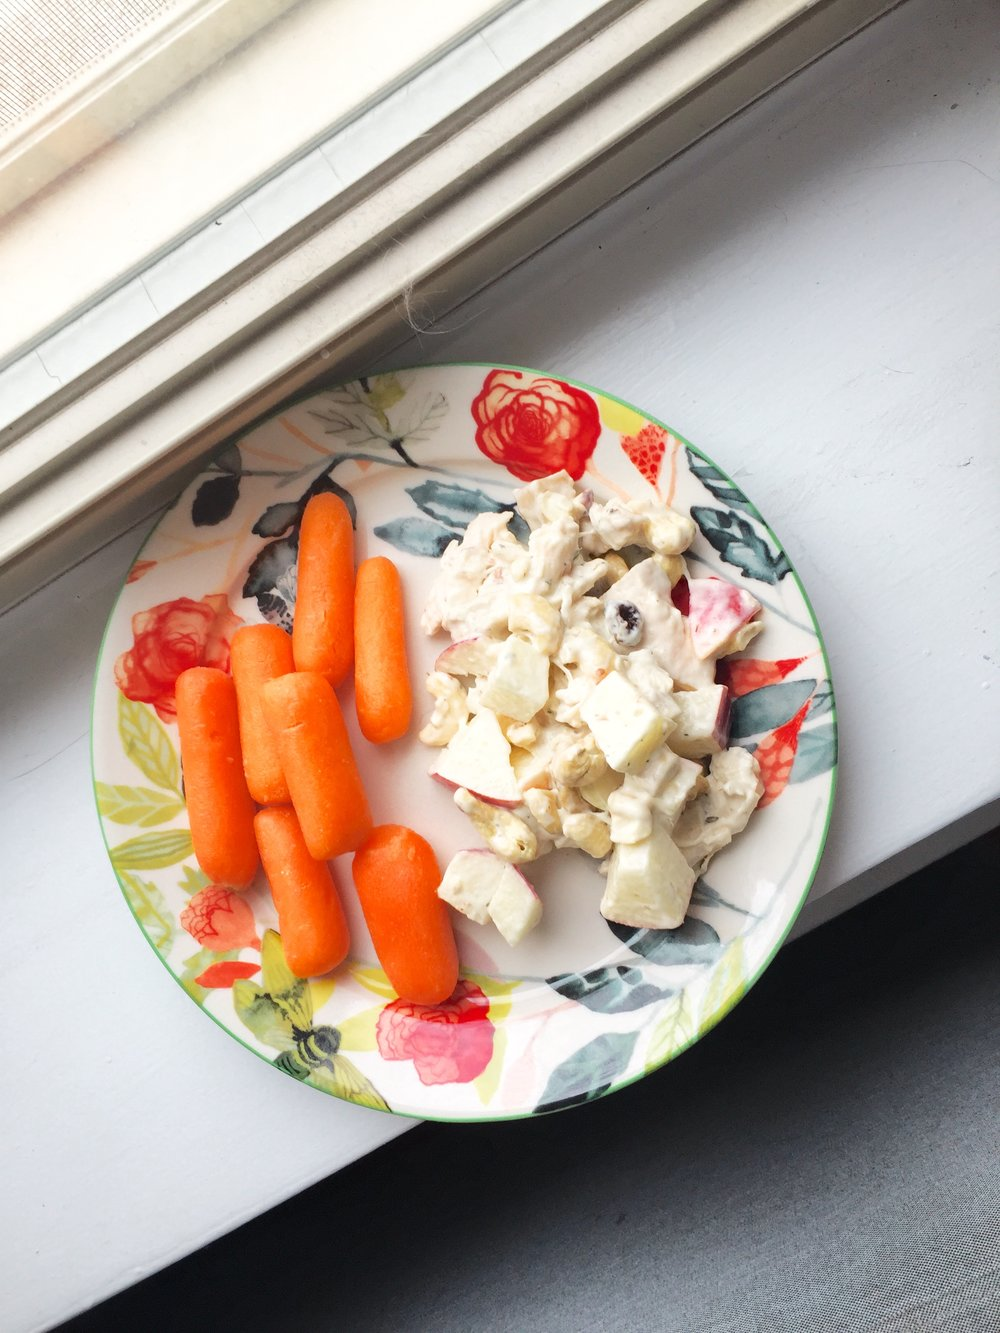 Chicken salad with apples, cashews, and raisins with carrots